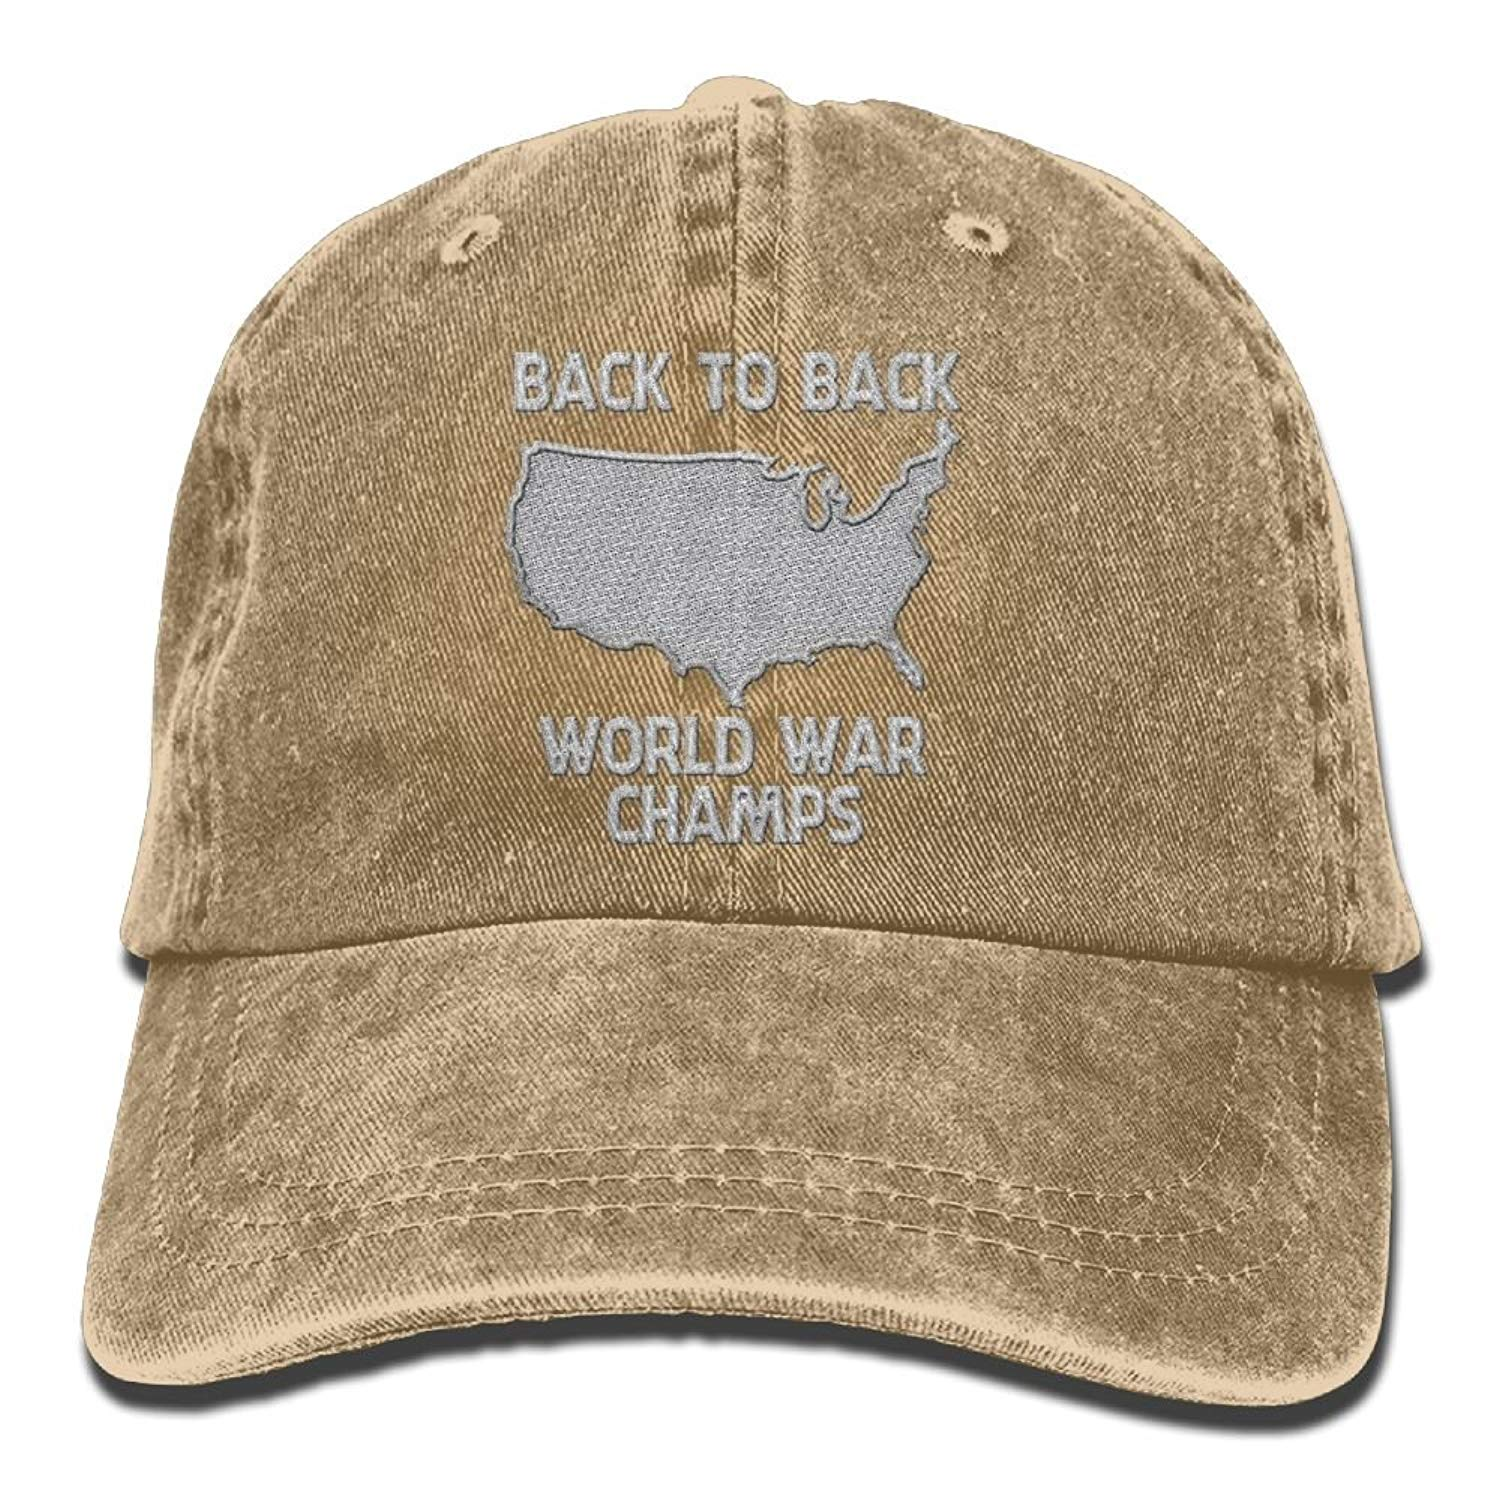 Get Quotations · Back-to-Back World War Champs - Embroidered Retro Denim  Baseball Hat Trucker Hat b659e91d4fe